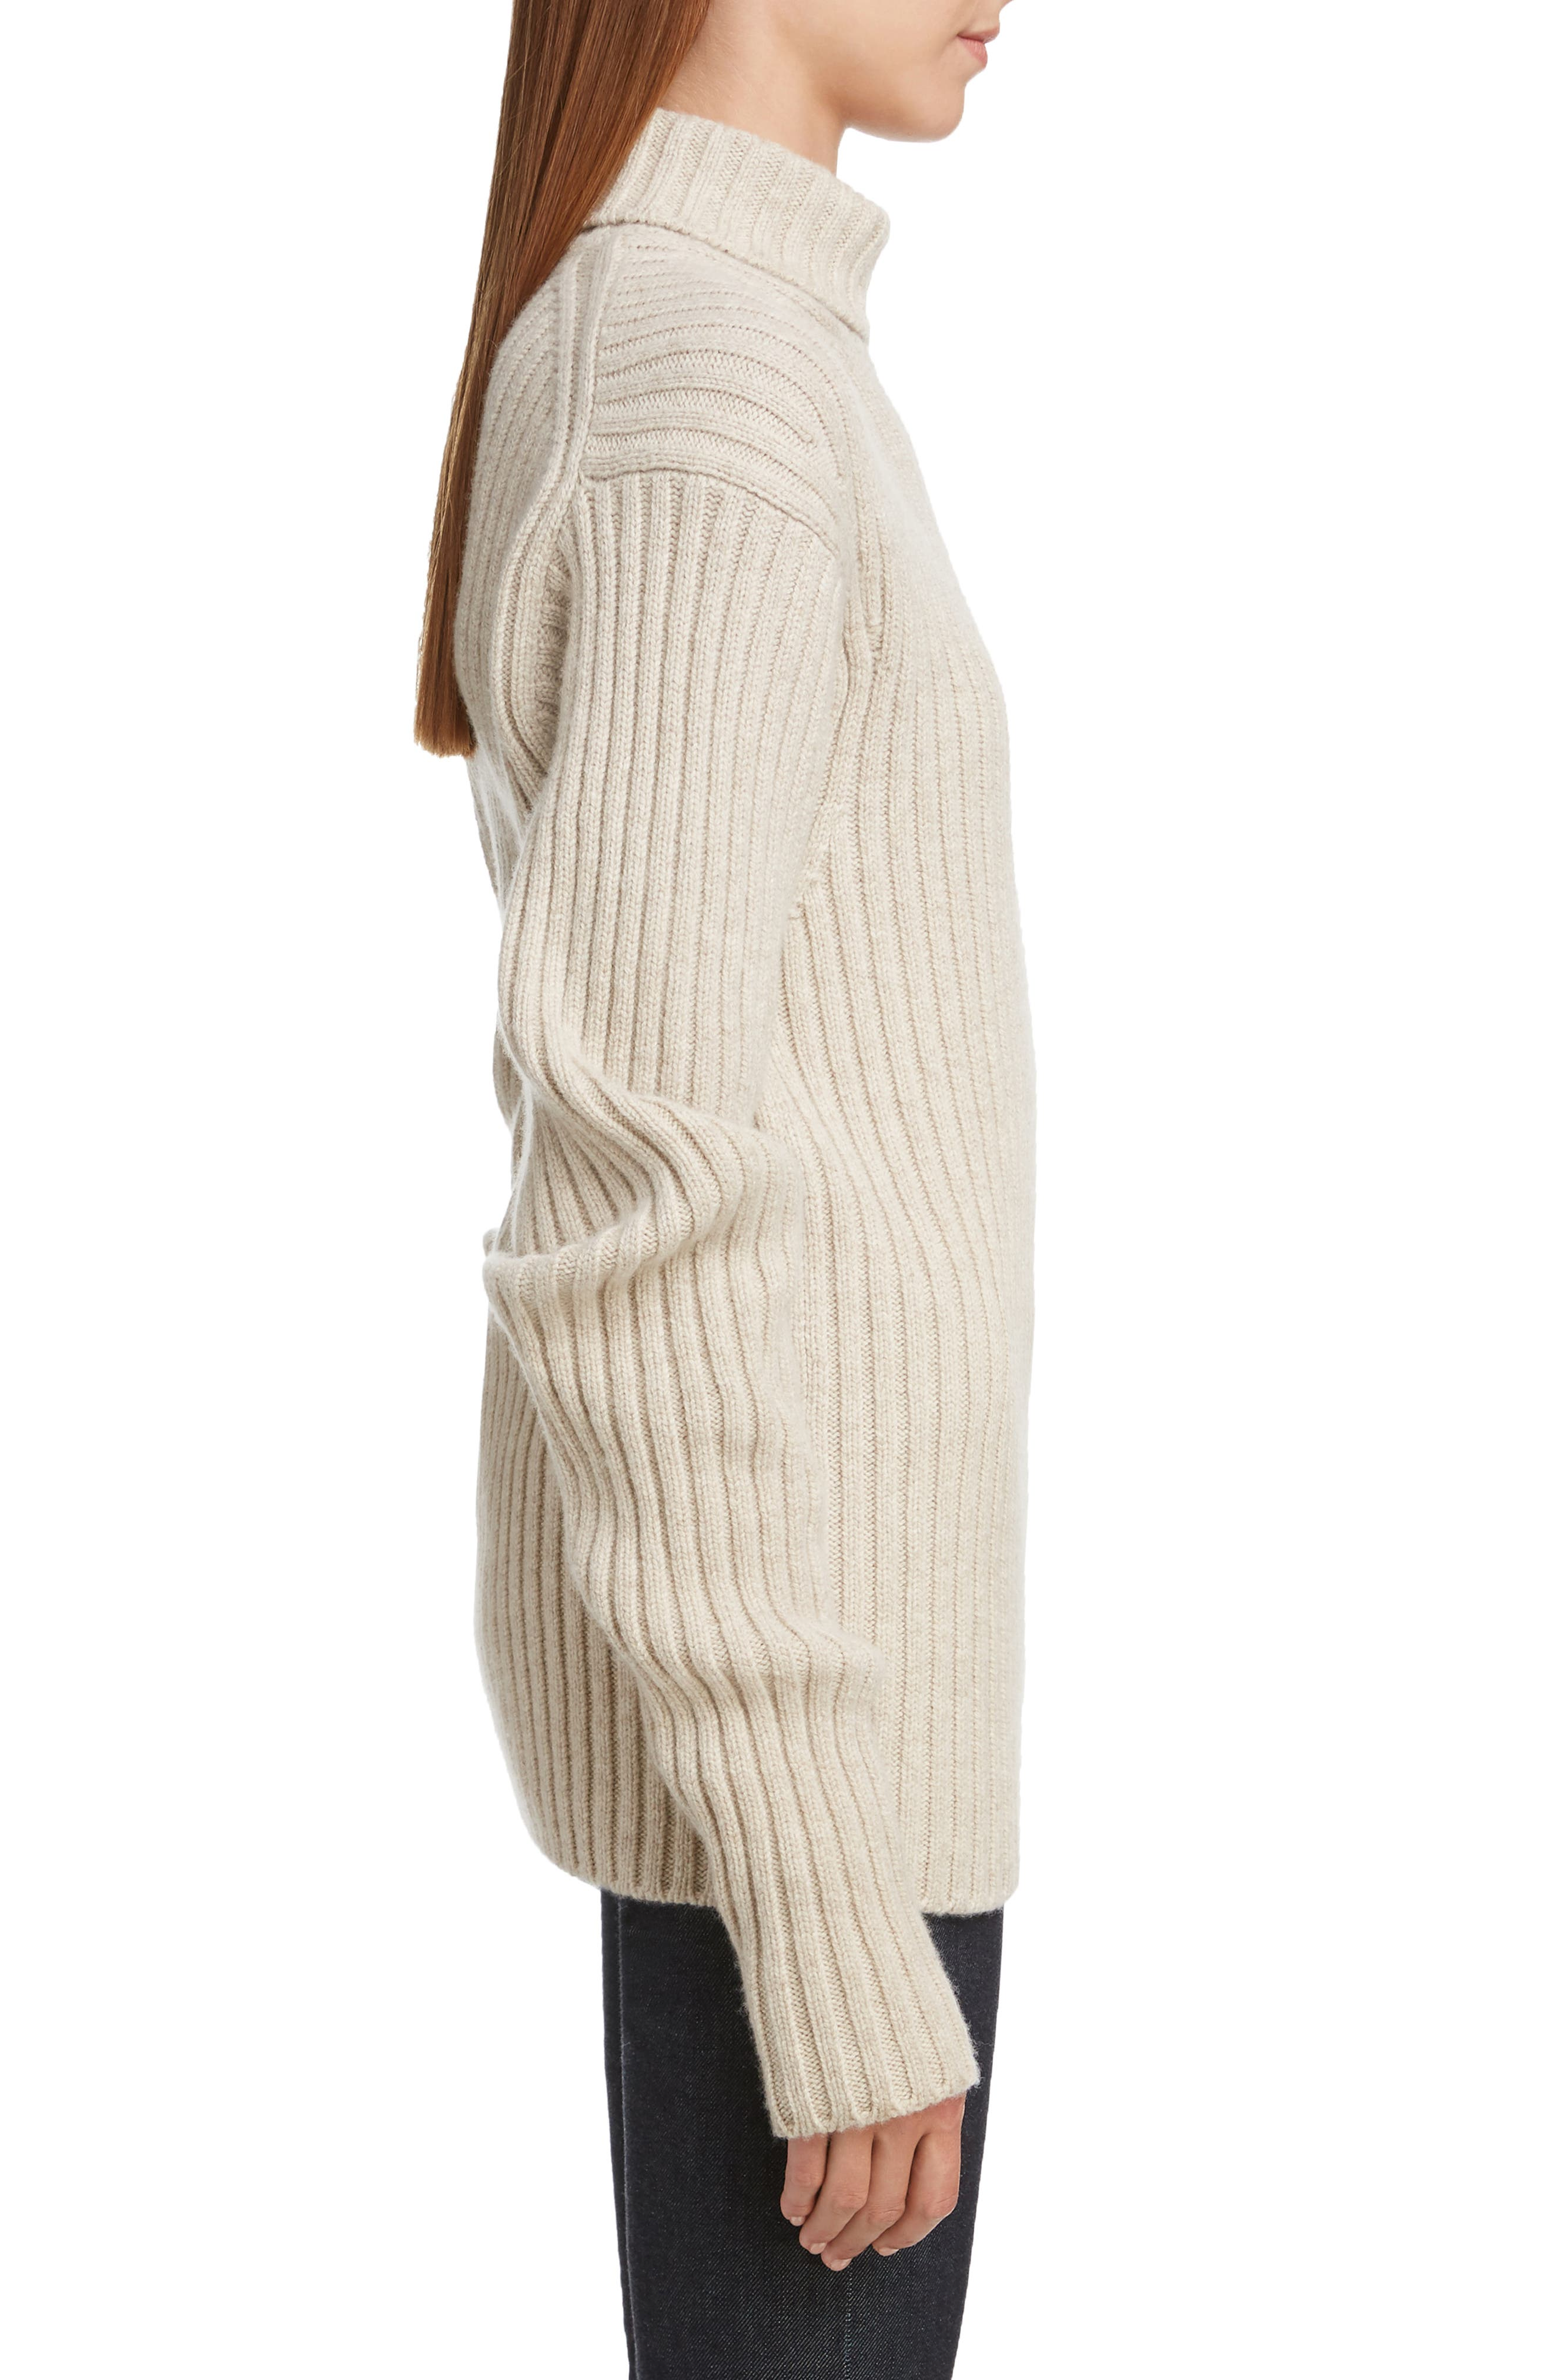 VICTORIA BECKHAM, Ribbed Wool Turtleneck Sweater, Alternate thumbnail 3, color, OATMEAL